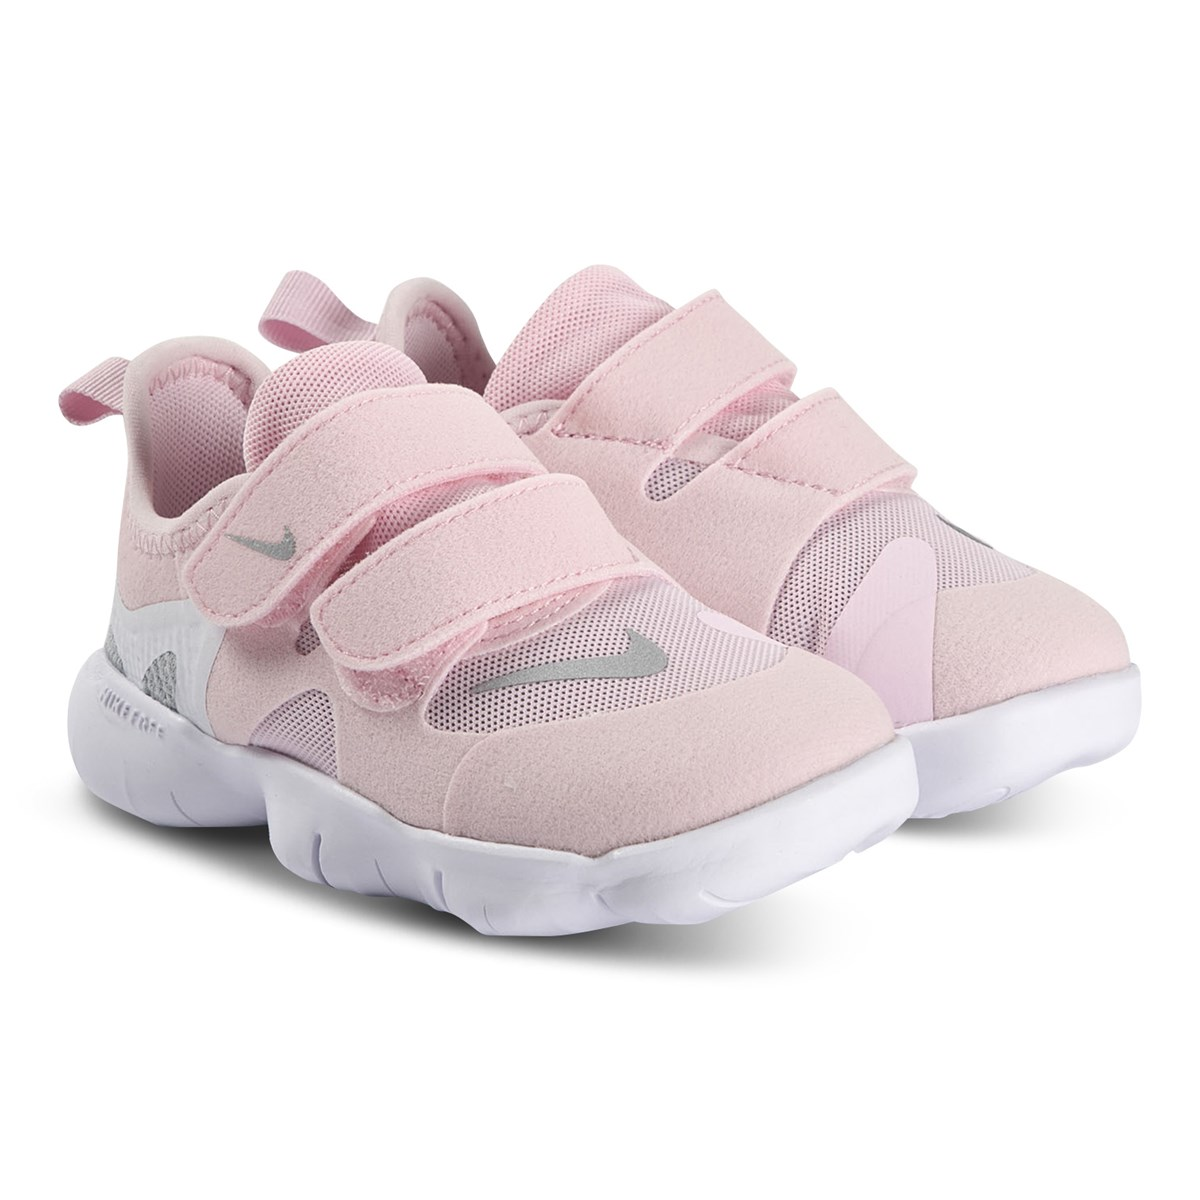 Nike Free Rn 5 0 Infant Sneakers Pink Foam And Metallic Silver Babyshop Com